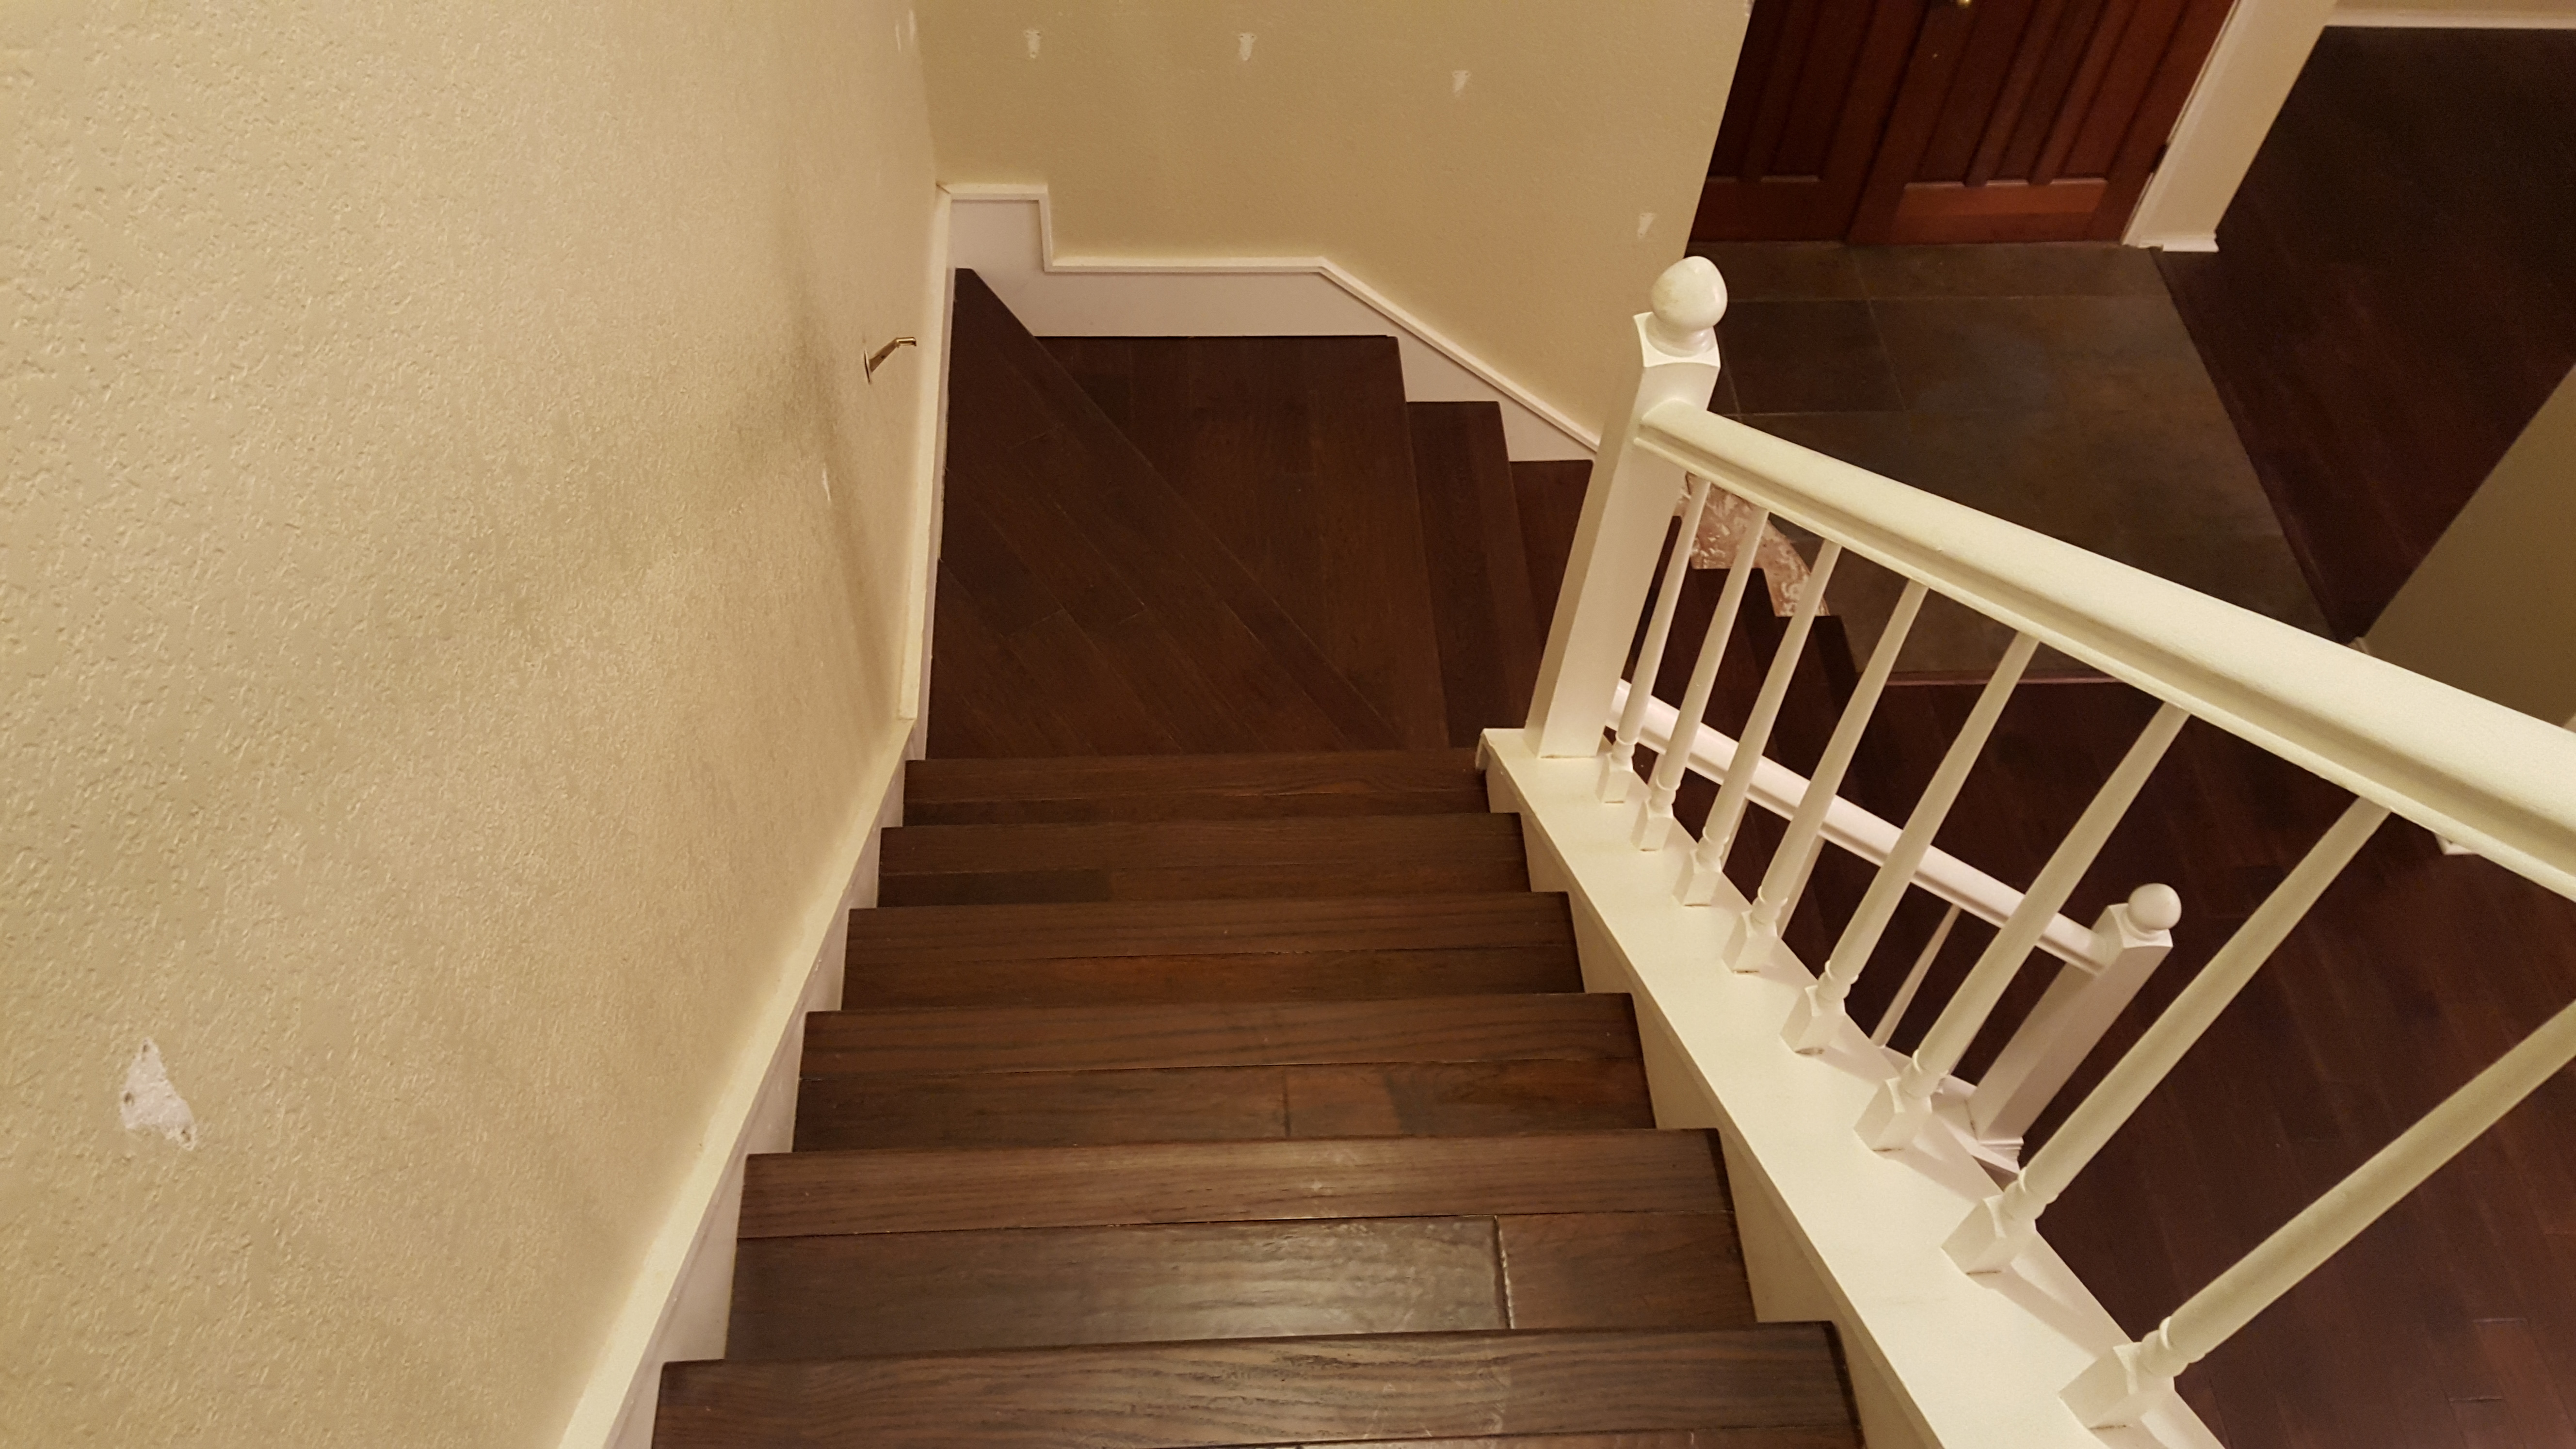 Next Day Floors Dfw In Fort Worth Tx 76114